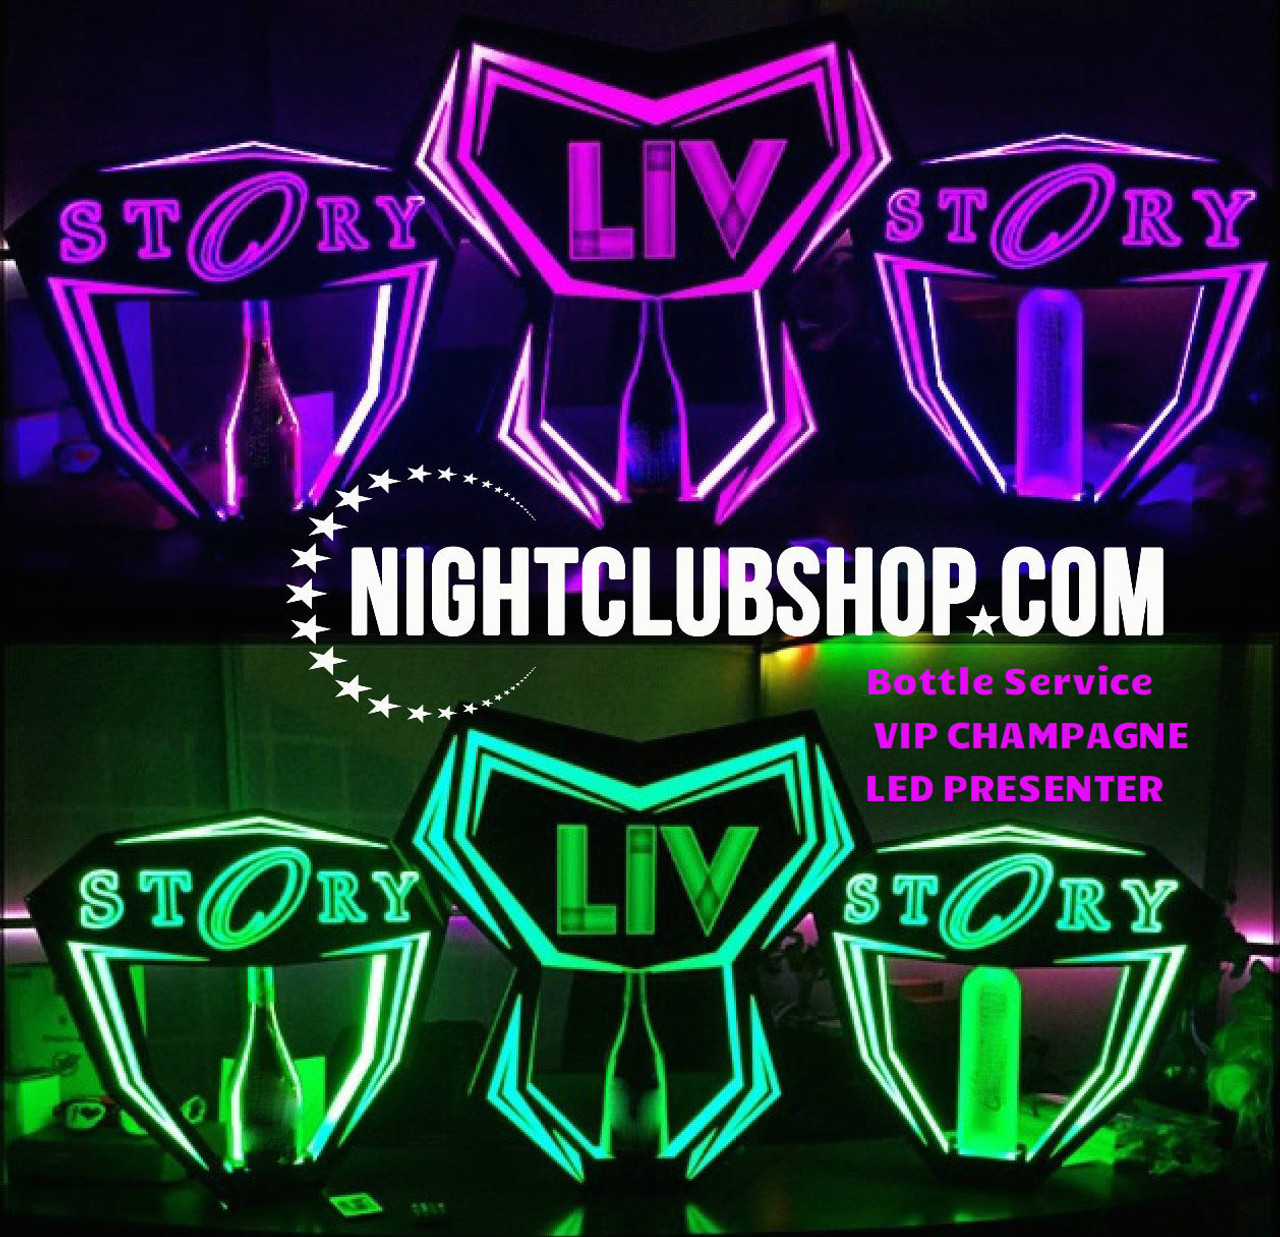 Miami,Champagne, 750 ml., Bottle,Service,Delivery,Hypemakerz,presentation, presenter,LED,LIV,Tray, Hype,LIV tray